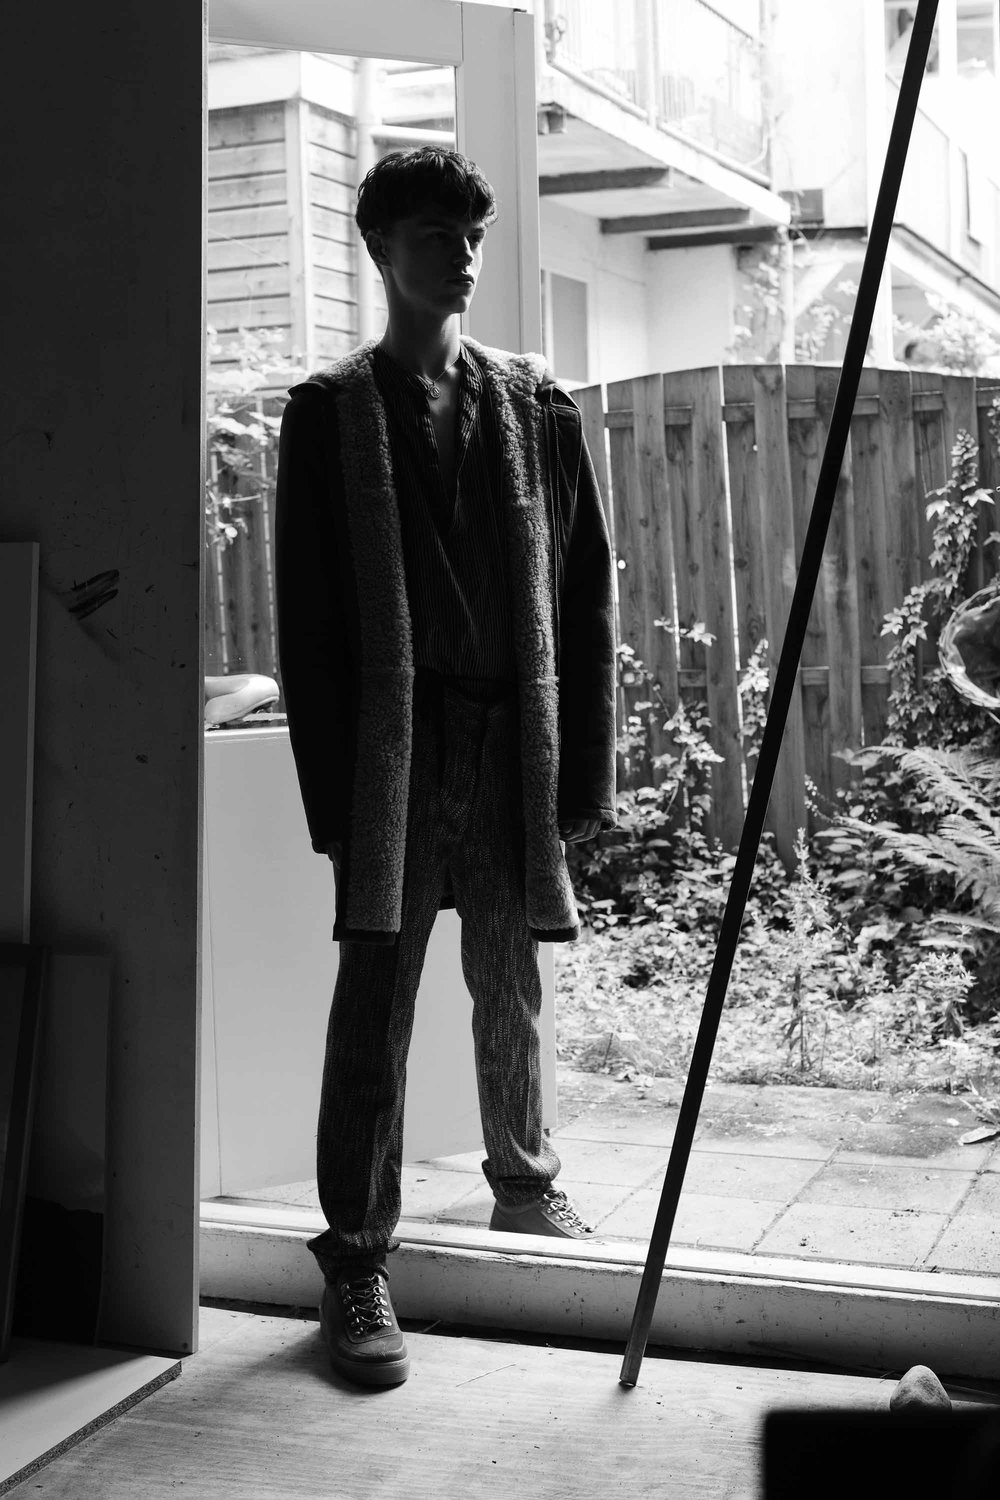 Coat by Tigha, Top We are Vintage, Pants Drykorn, Shoes Tommy Hilfiger, Necklace Model's own